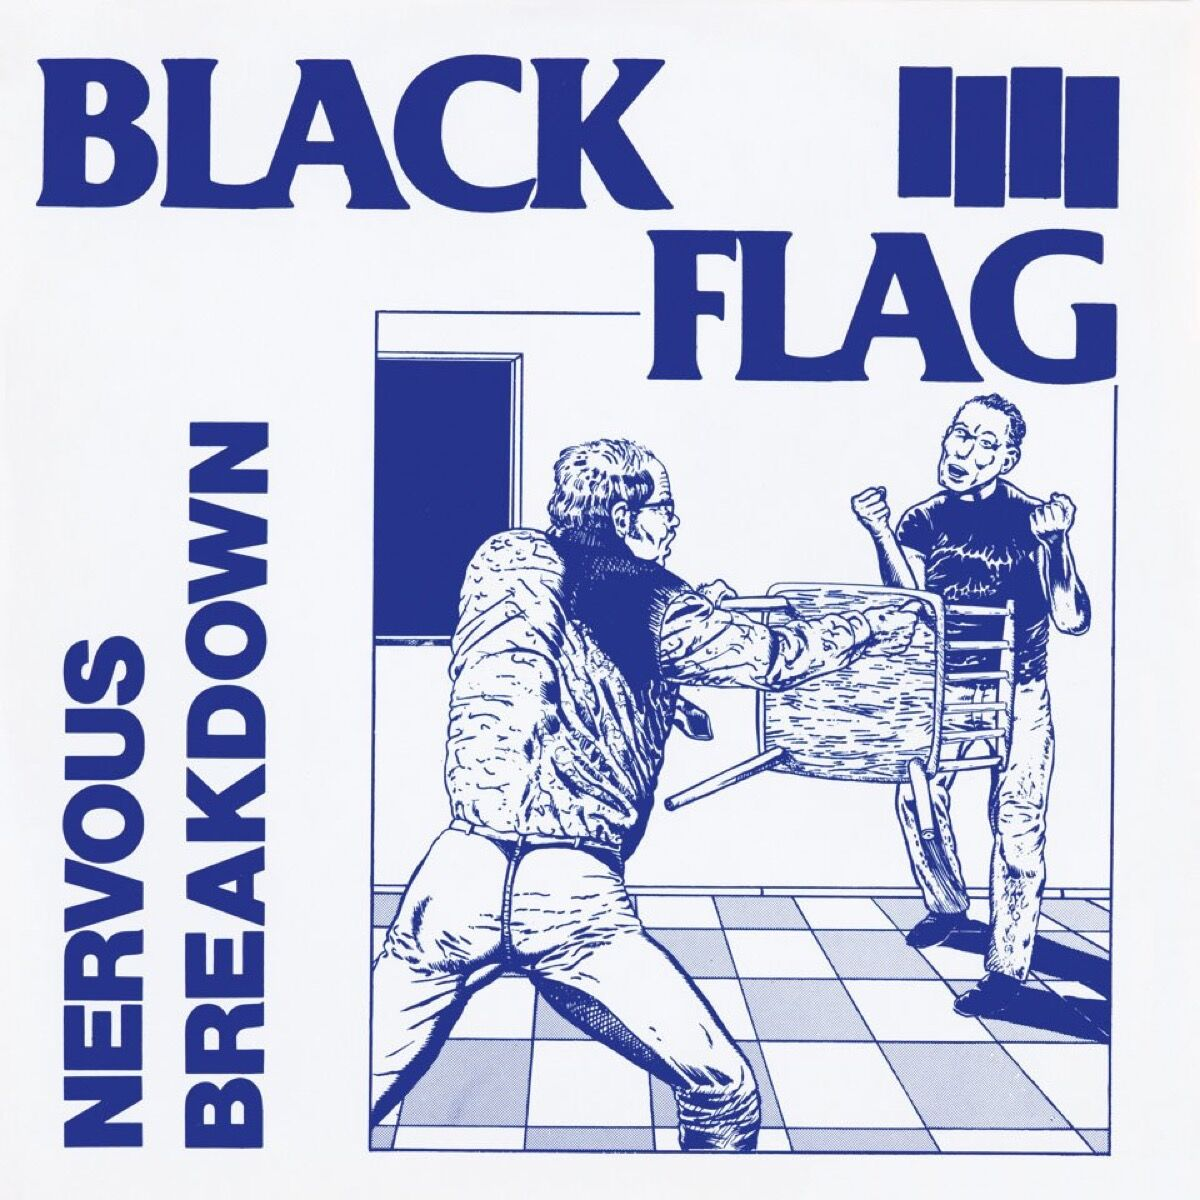 Raymond Pettibon's cover for Black Flag by Nervous Breakdown, 1980. Courtesy of TASCHEN.